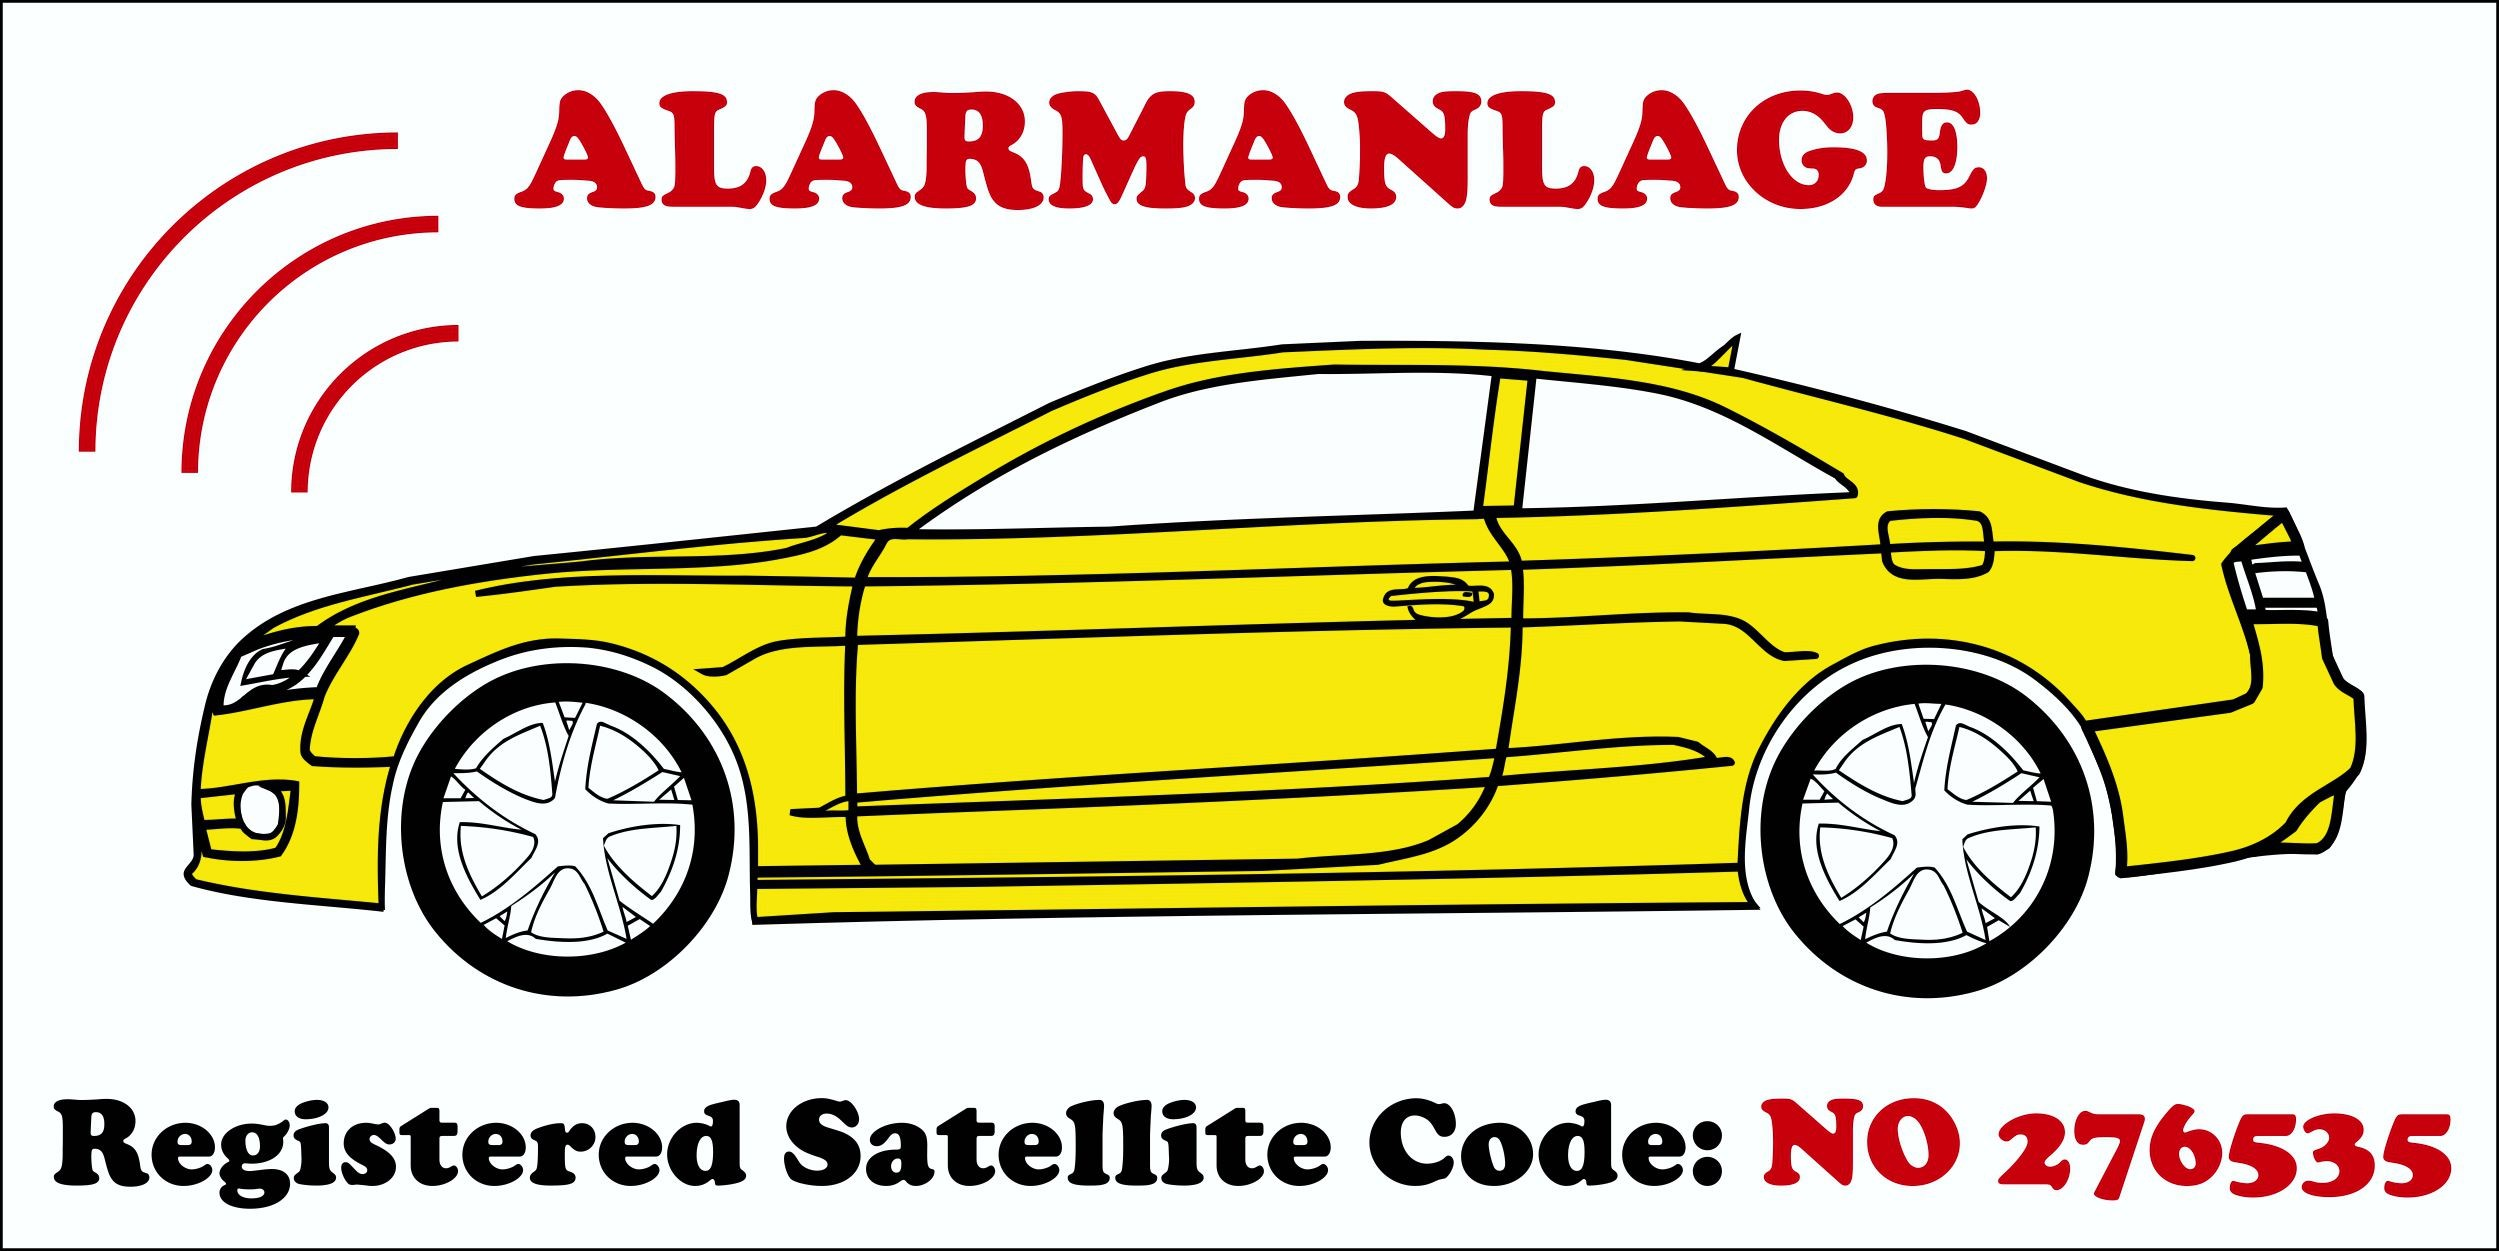 Sticker Alarmanlage Satellite 001